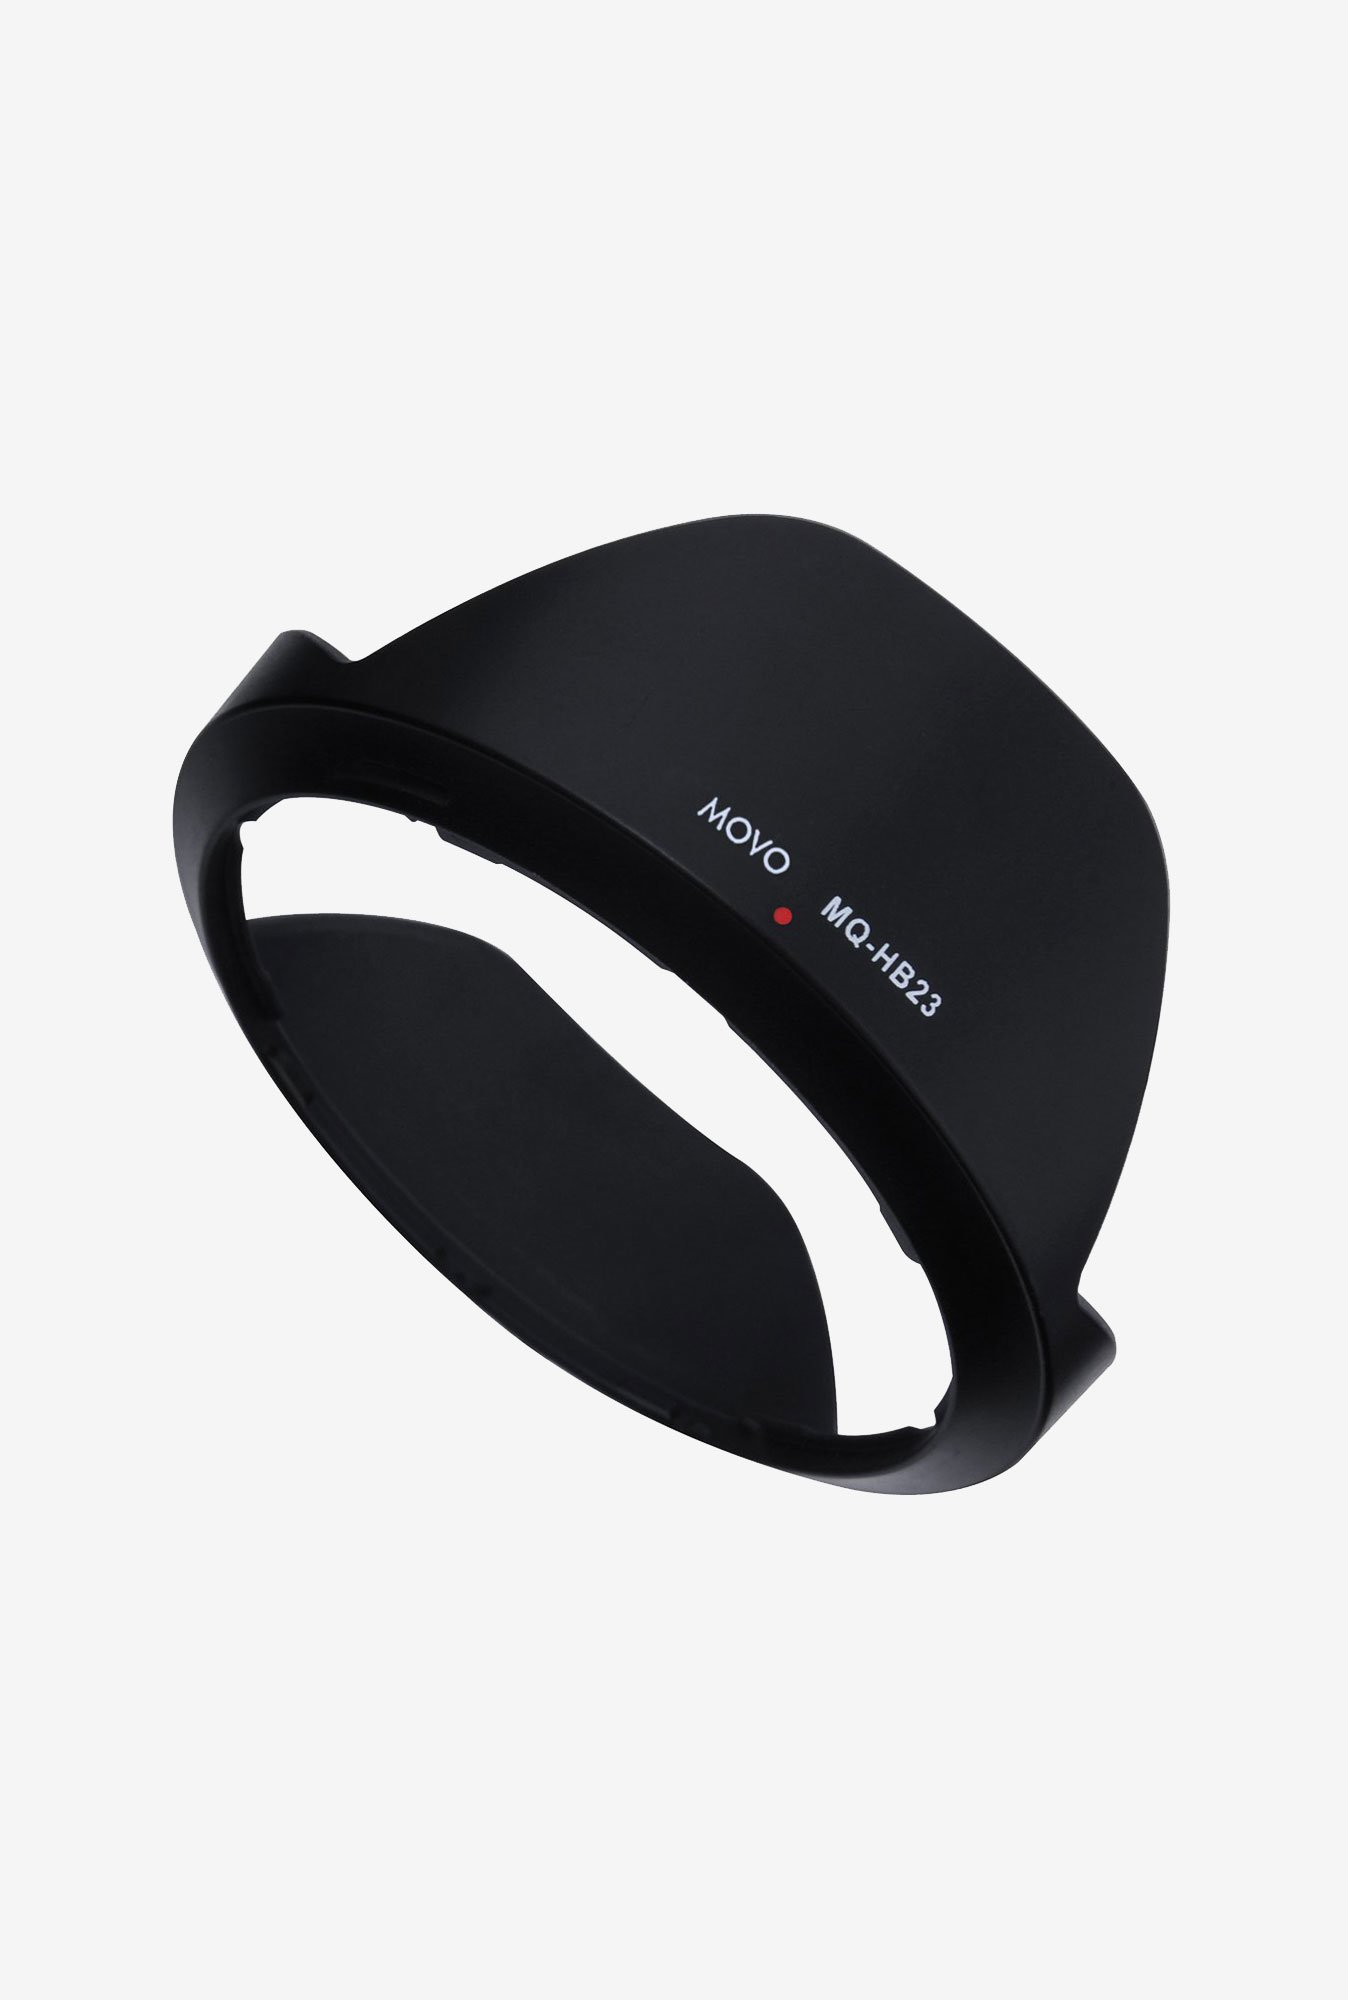 Movo Photo HB-23 Lens Hood for Nikon (Black)